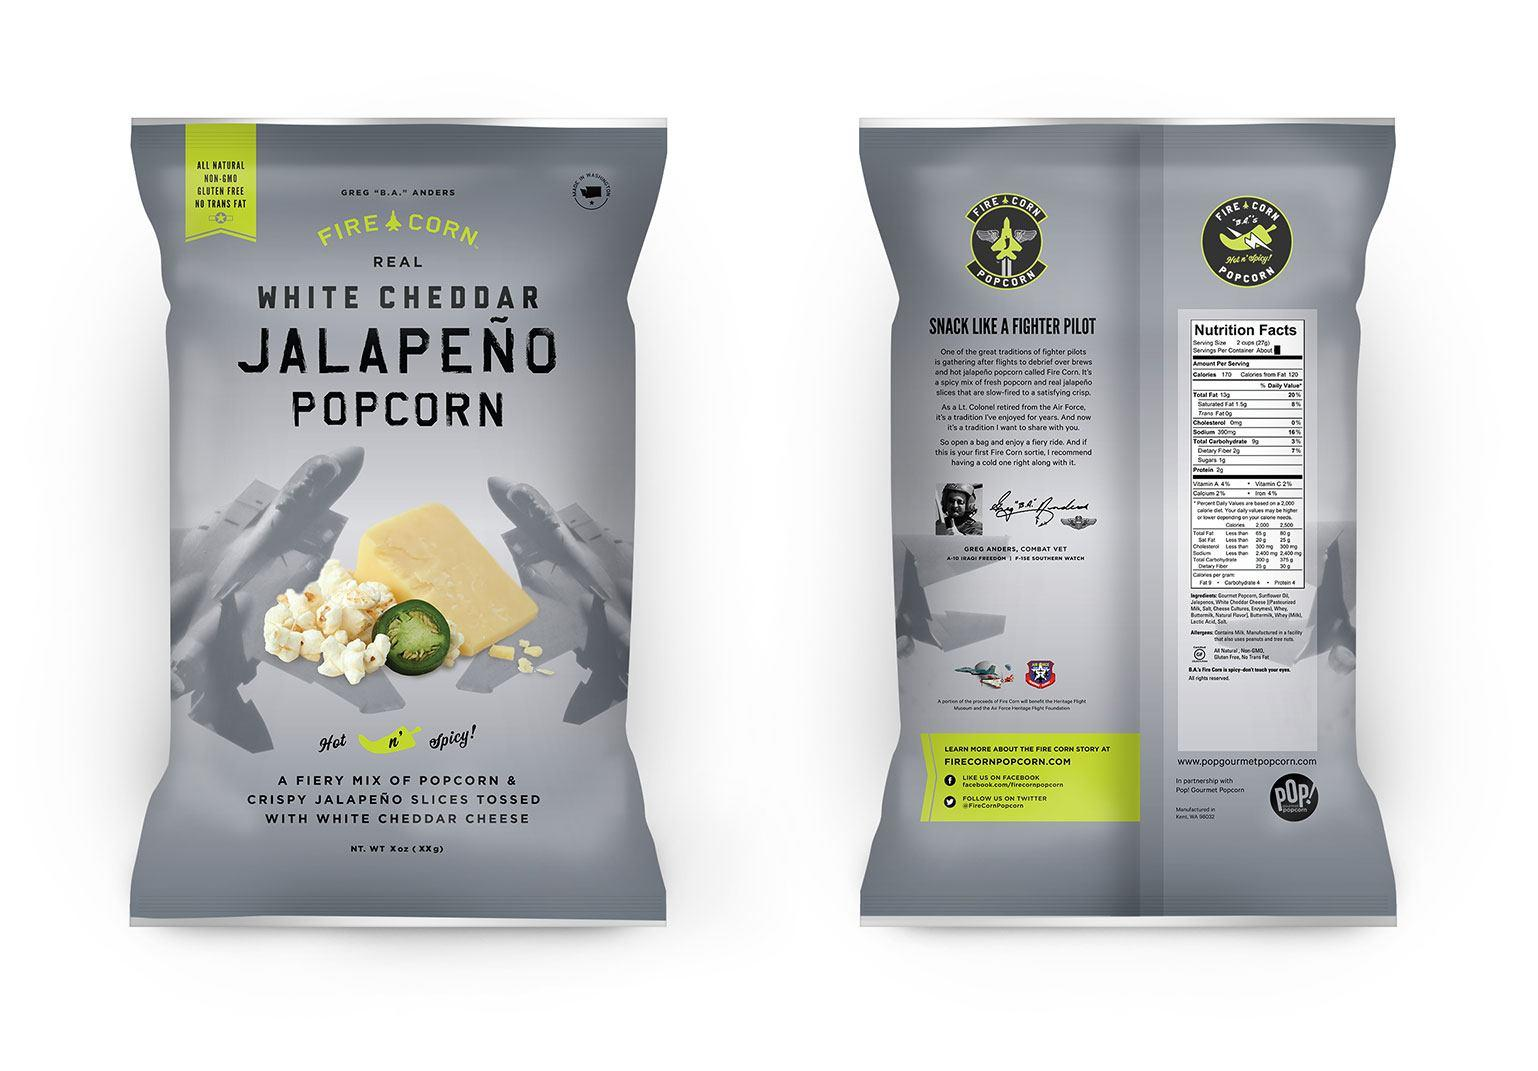 Bag of white cheddar popcorn, front and back of packaging, featuring images of fighter jets, cheese wedge, popcorn and jalepeno slices